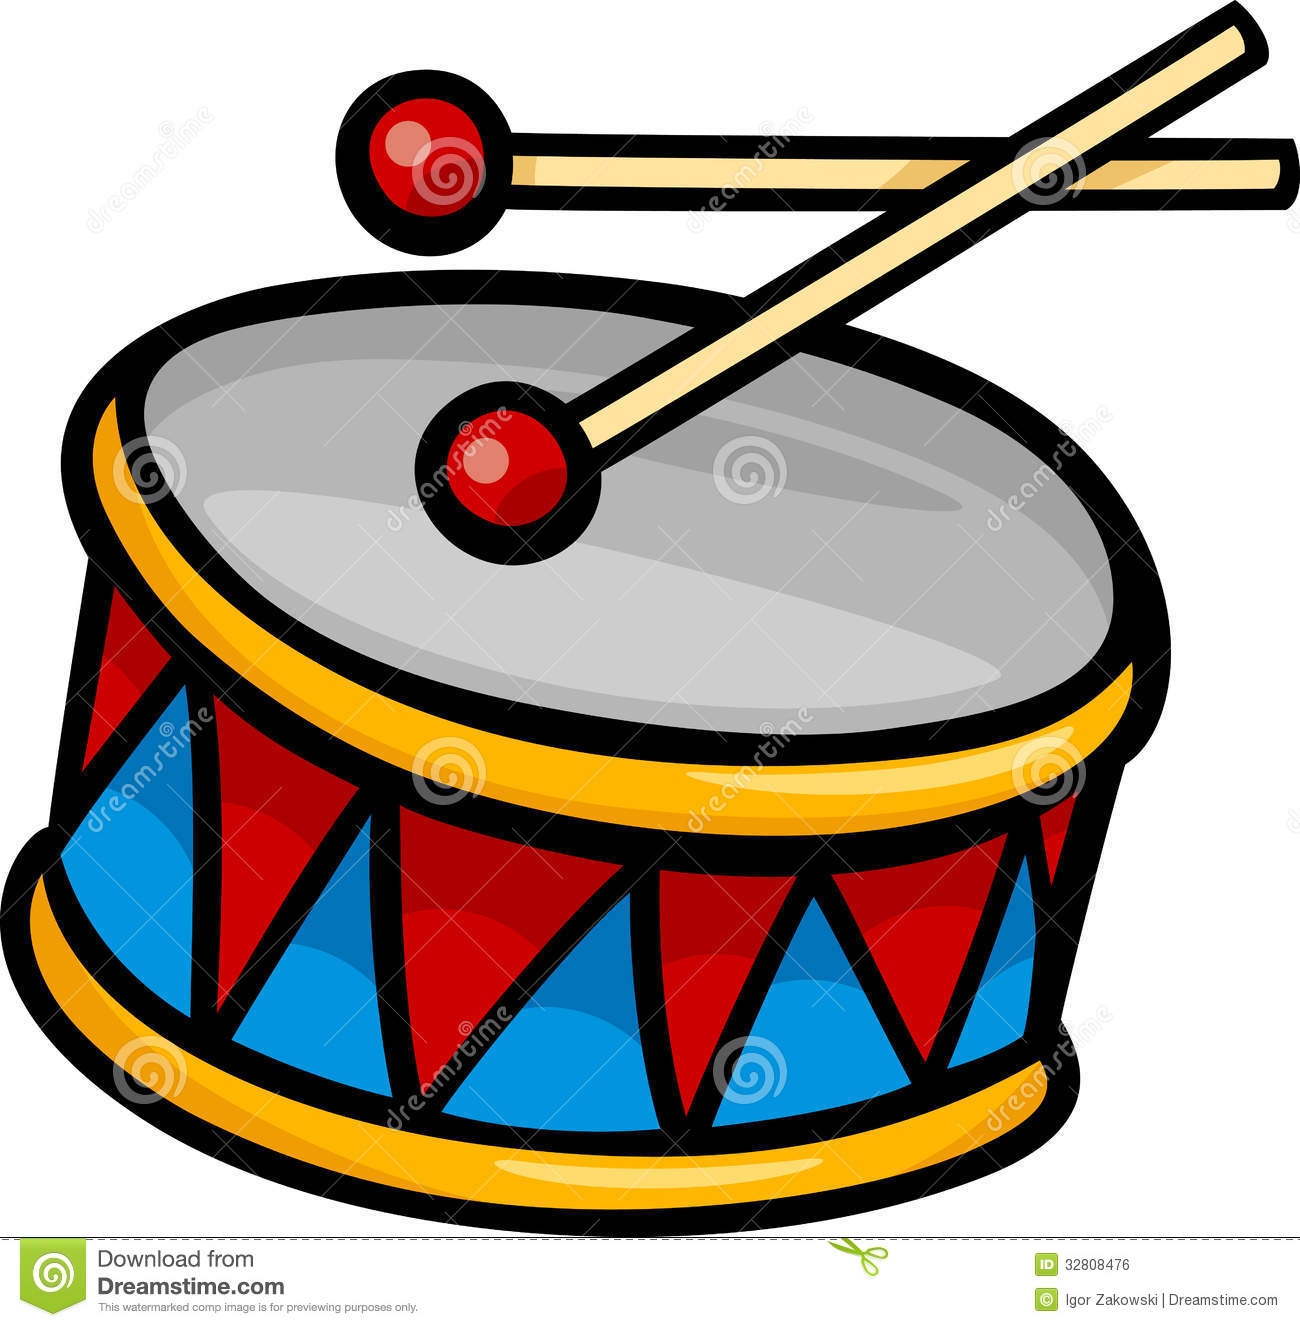 Snare Drum Clipart Black And White Drum Clip Art Drum Clip Art Cartoon